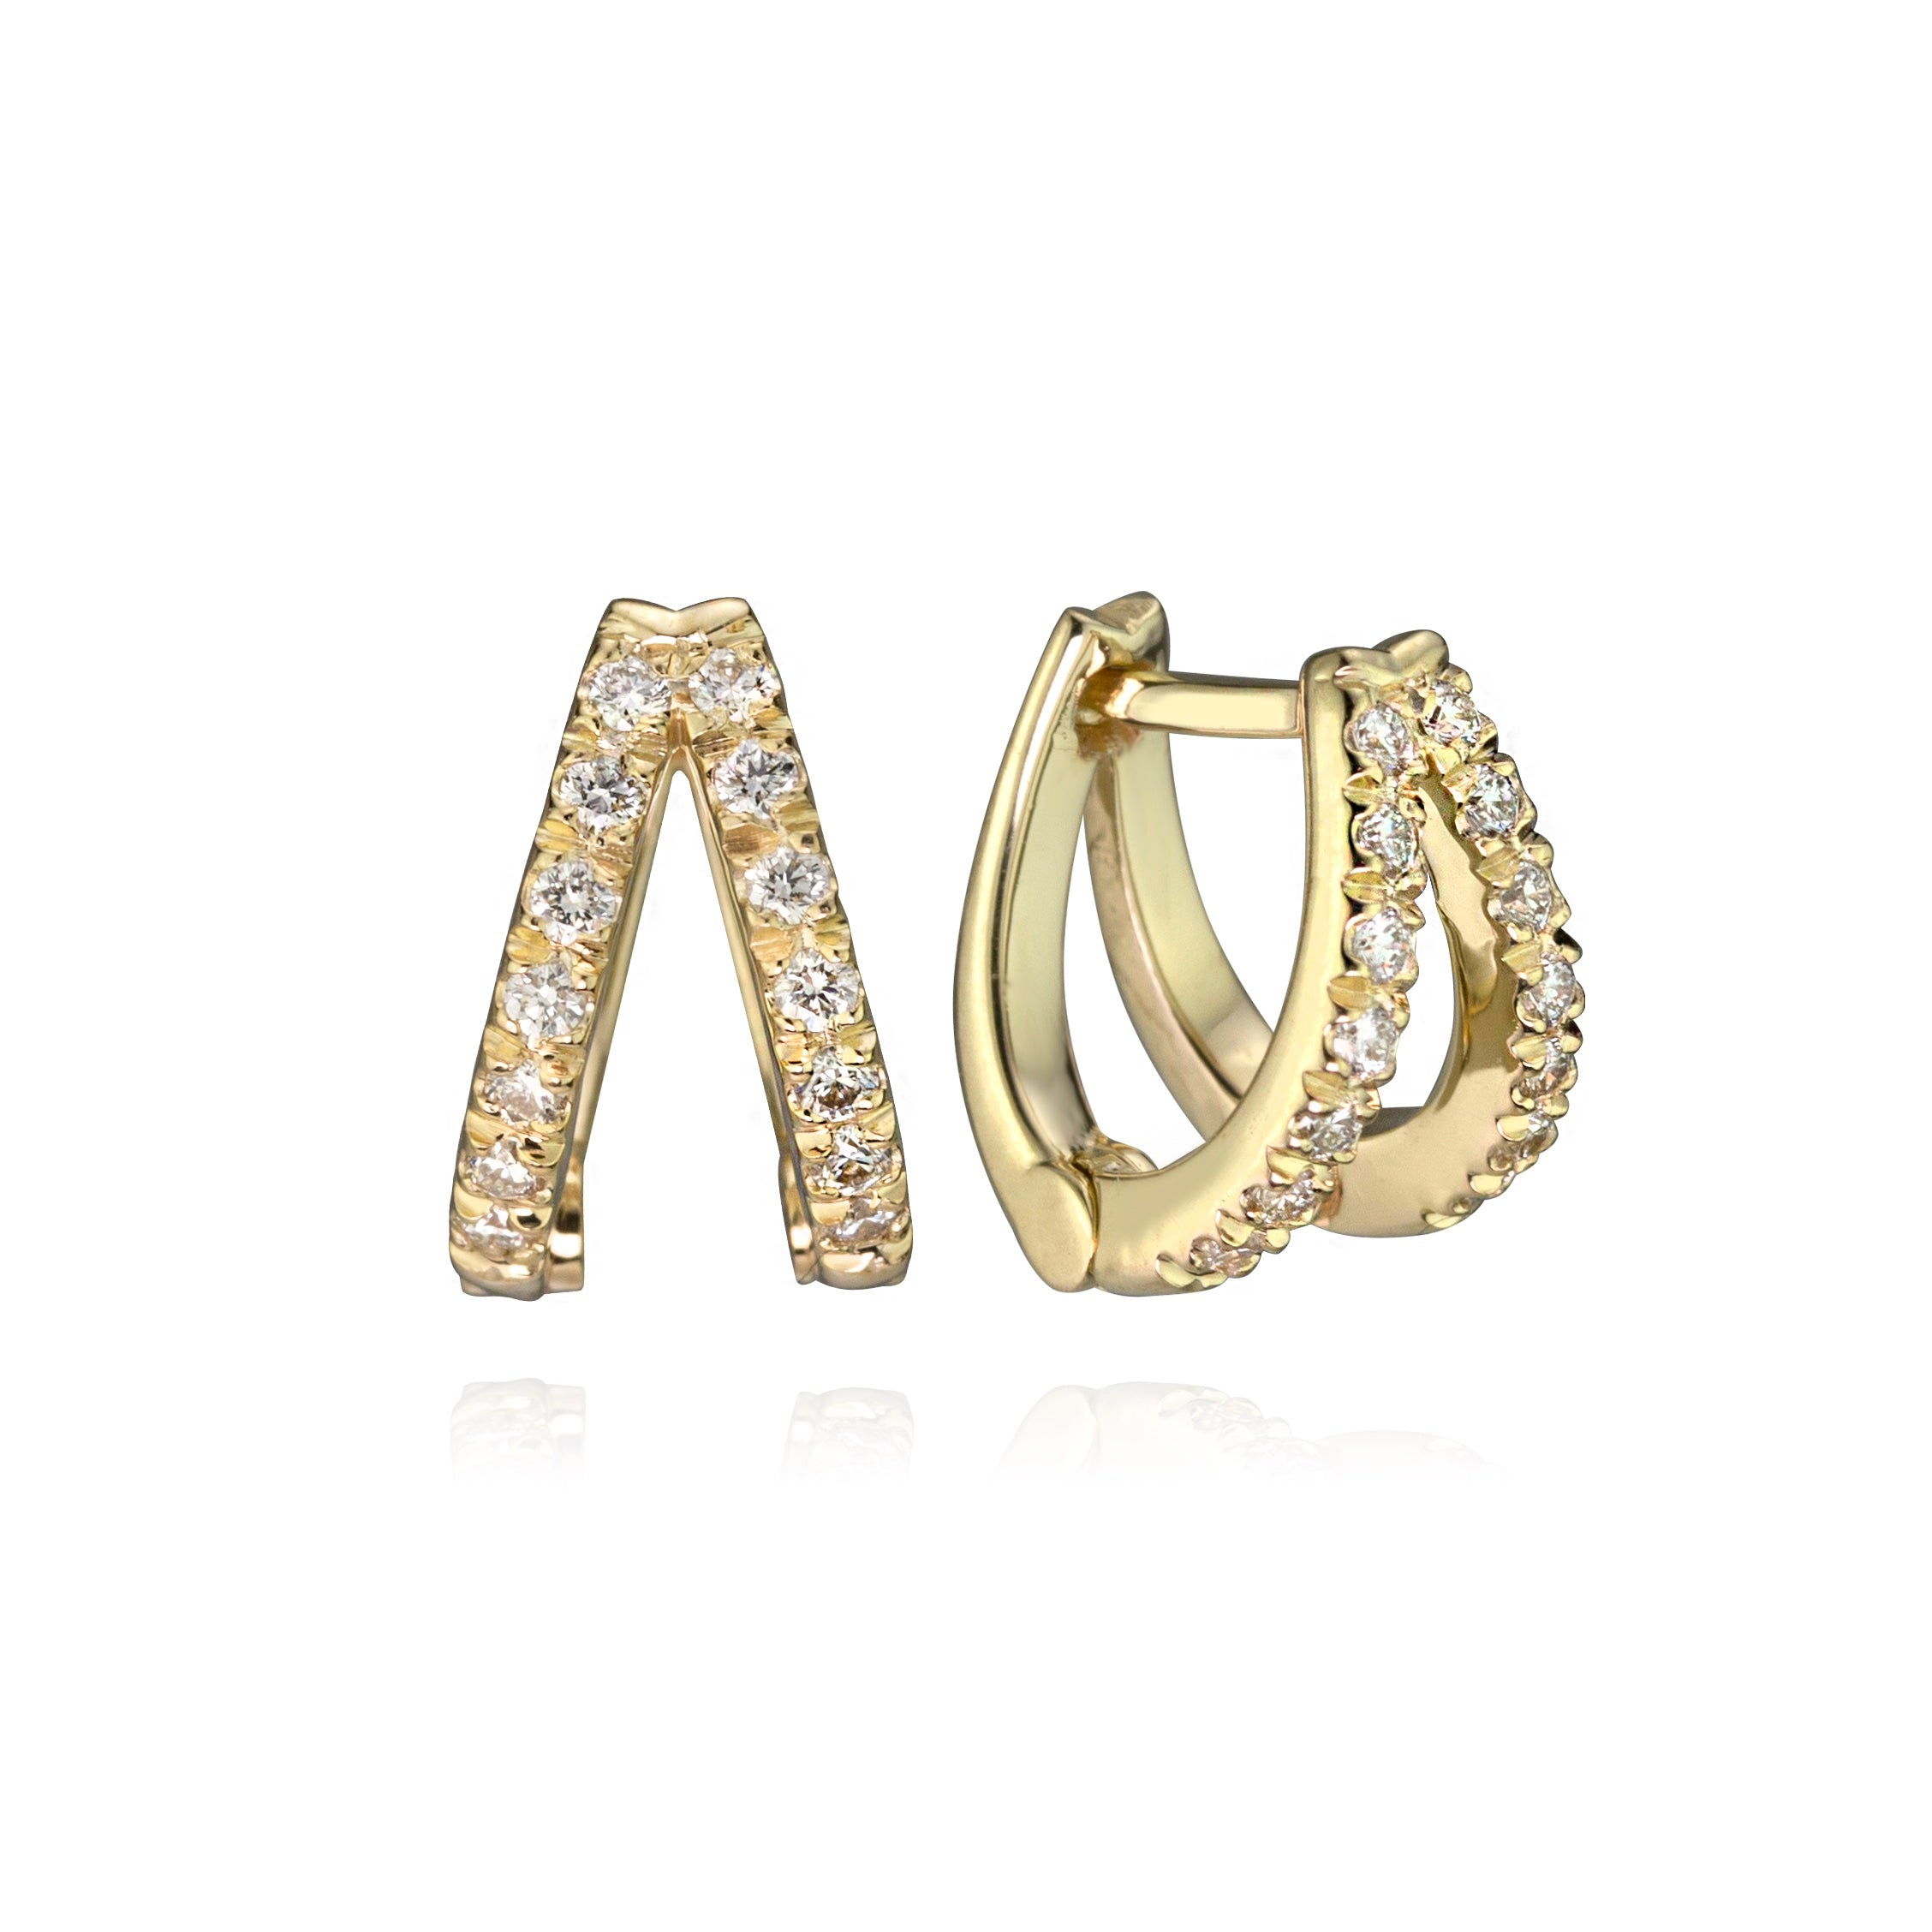 Diamond double huggies in 14k yellow gold, showing closure